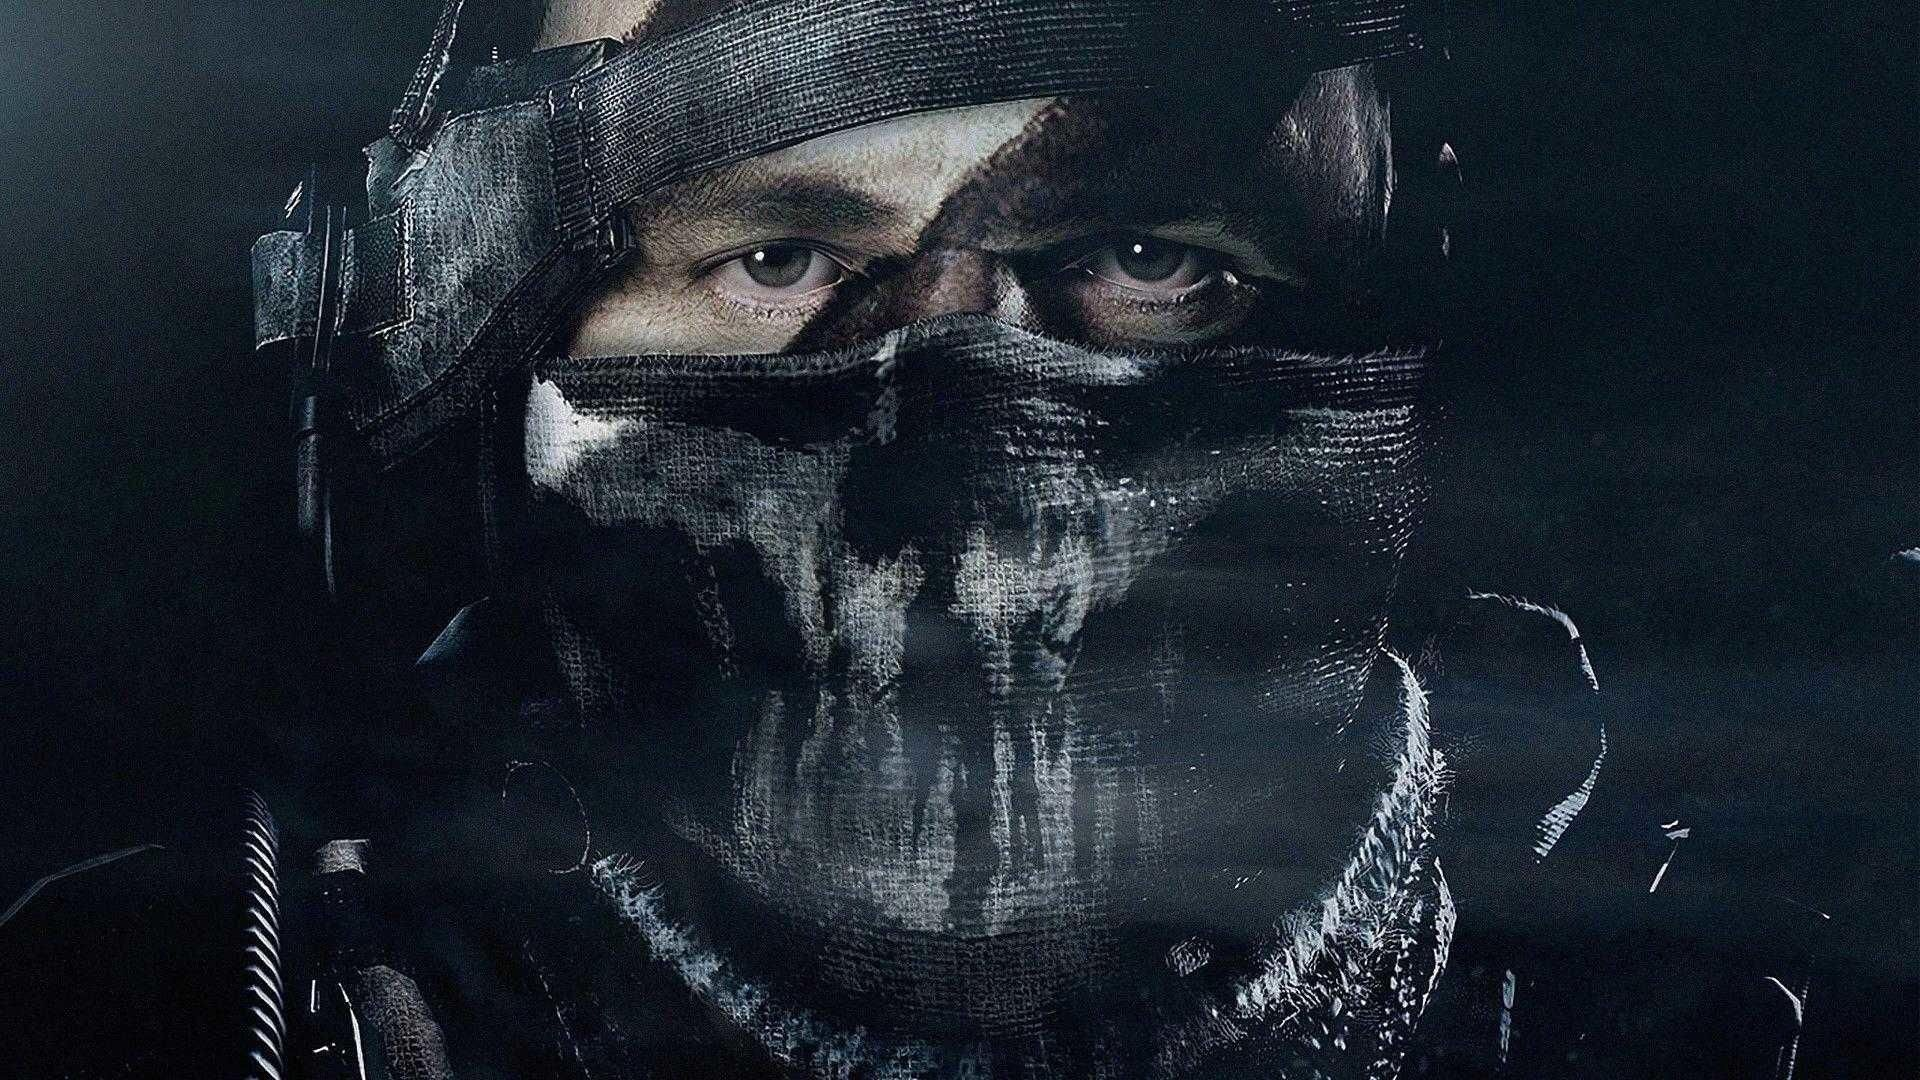 Cod Ghost Merrick 1920x1080 Call Of Duty Ghosts Call Of Duty Black And White Face